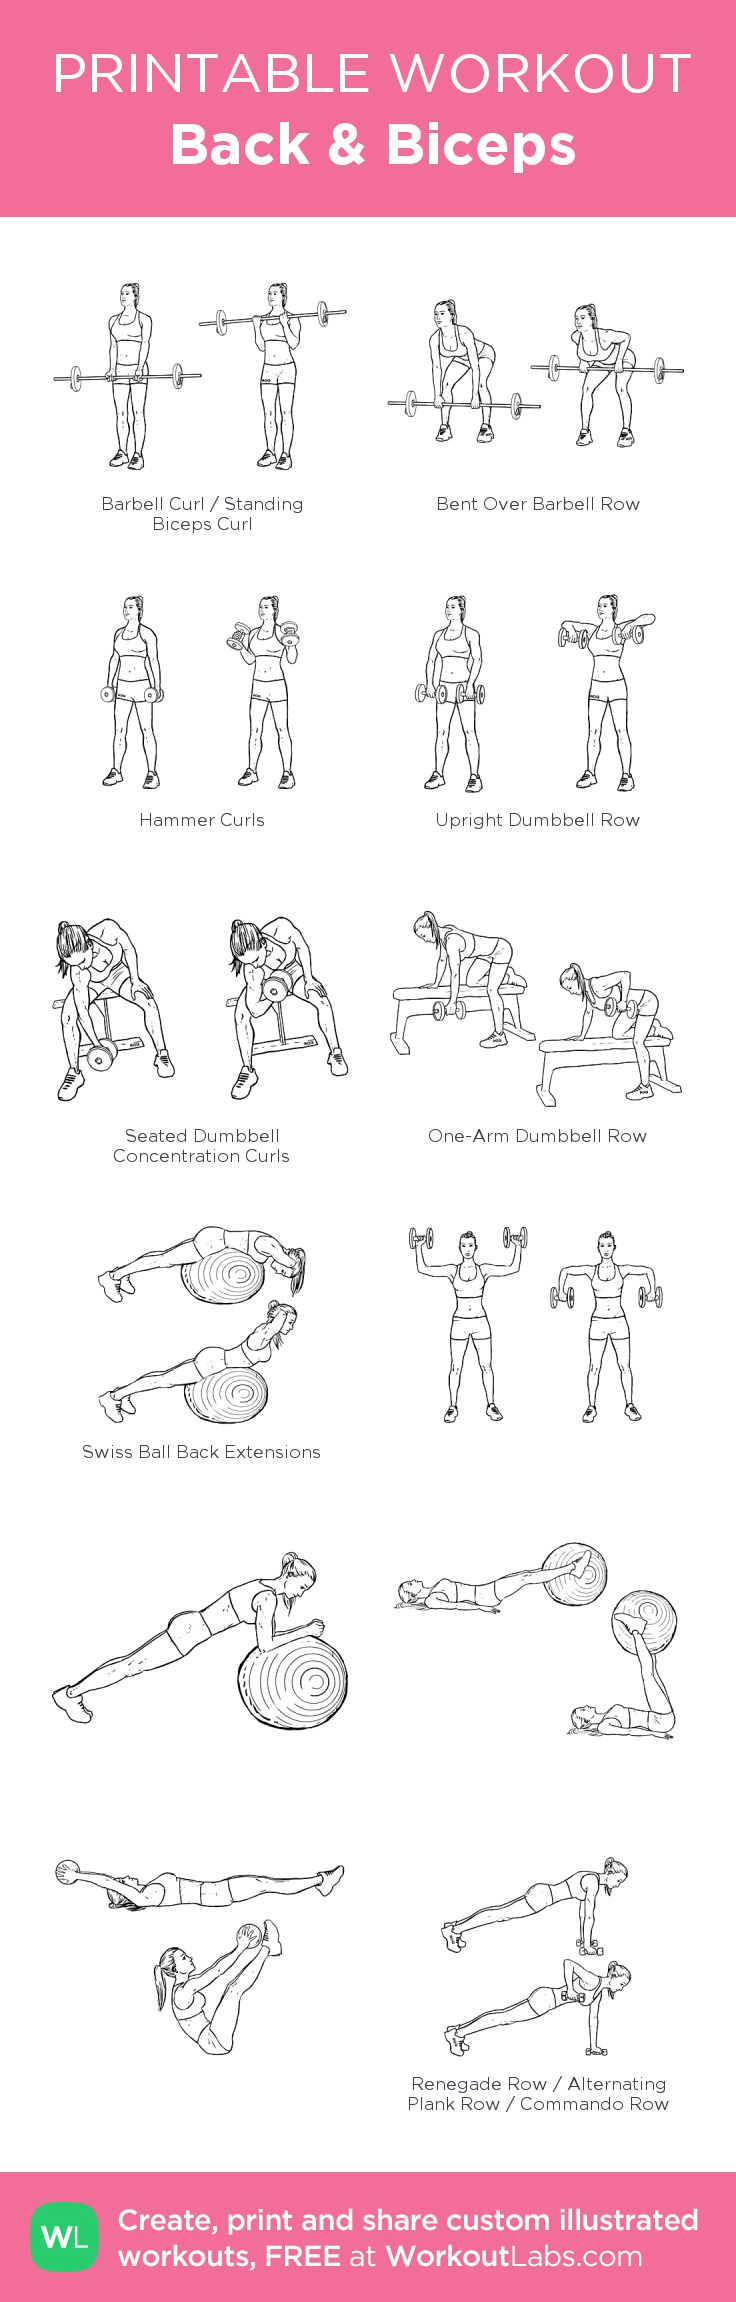 Back & Biceps: my visual workout created at WorkoutLabs.com • Click through to customize and download as a FREE PDF! #customworkout